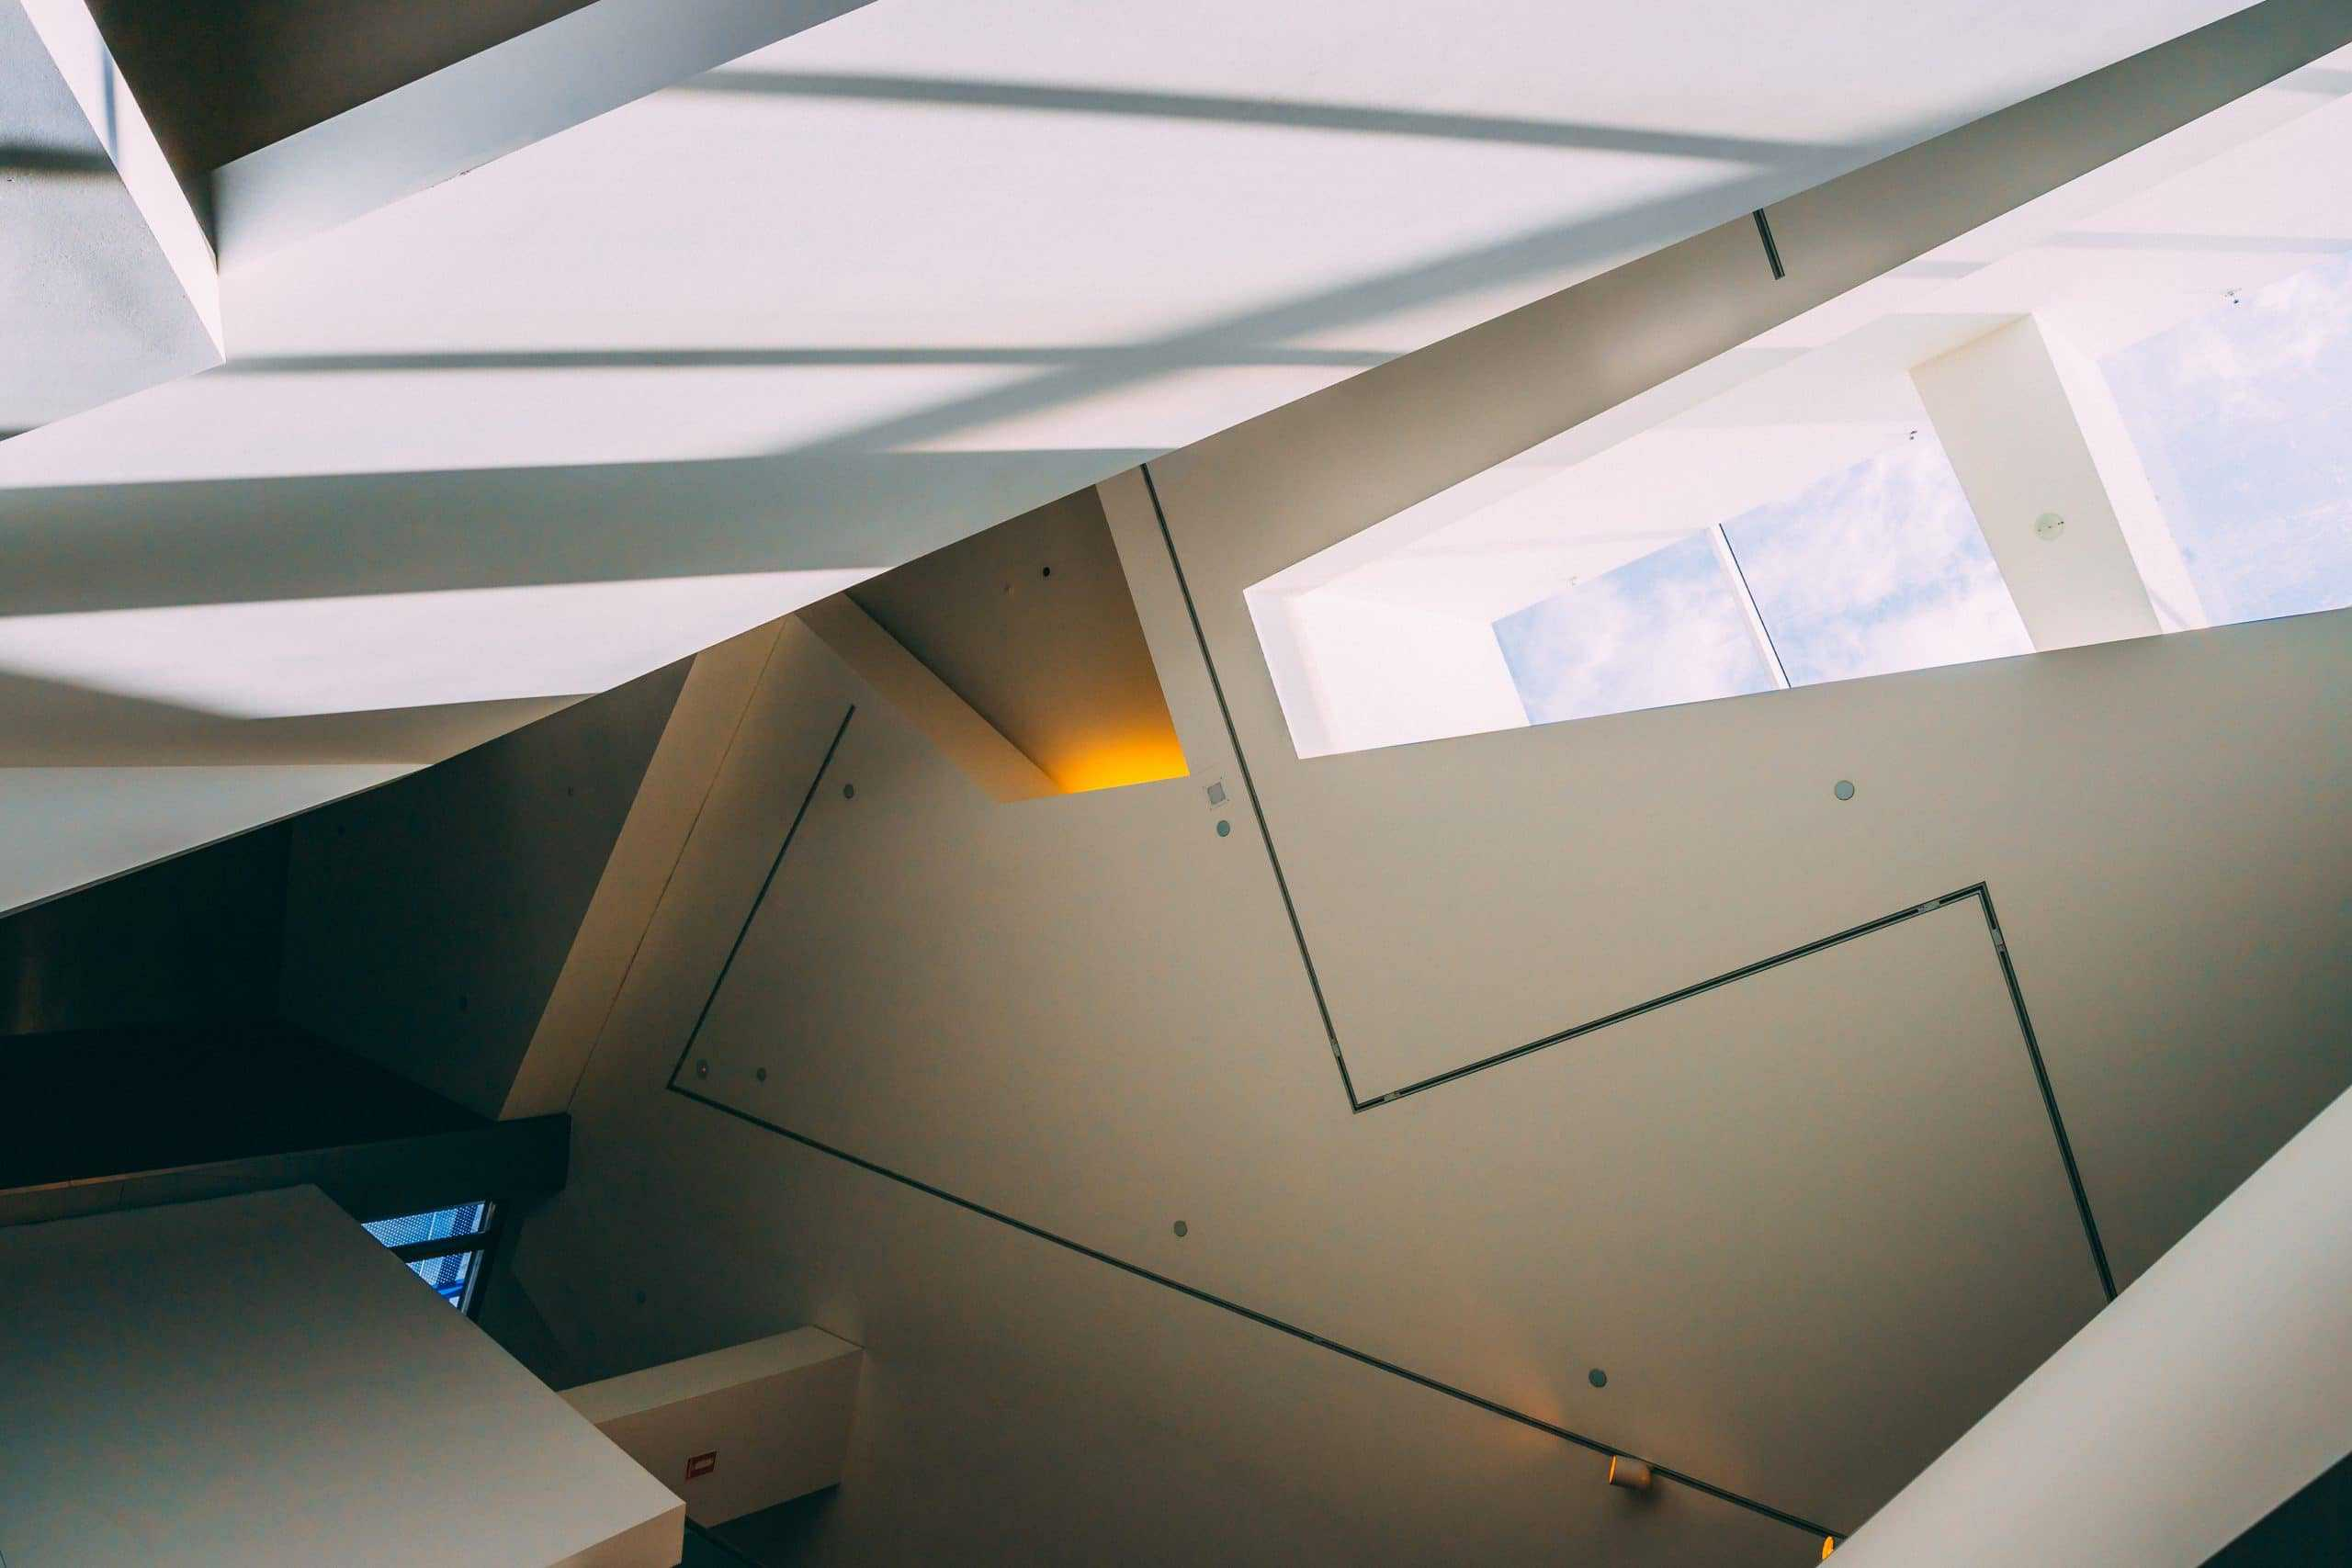 Skylight Repair and Replacement - Architectural Skylight